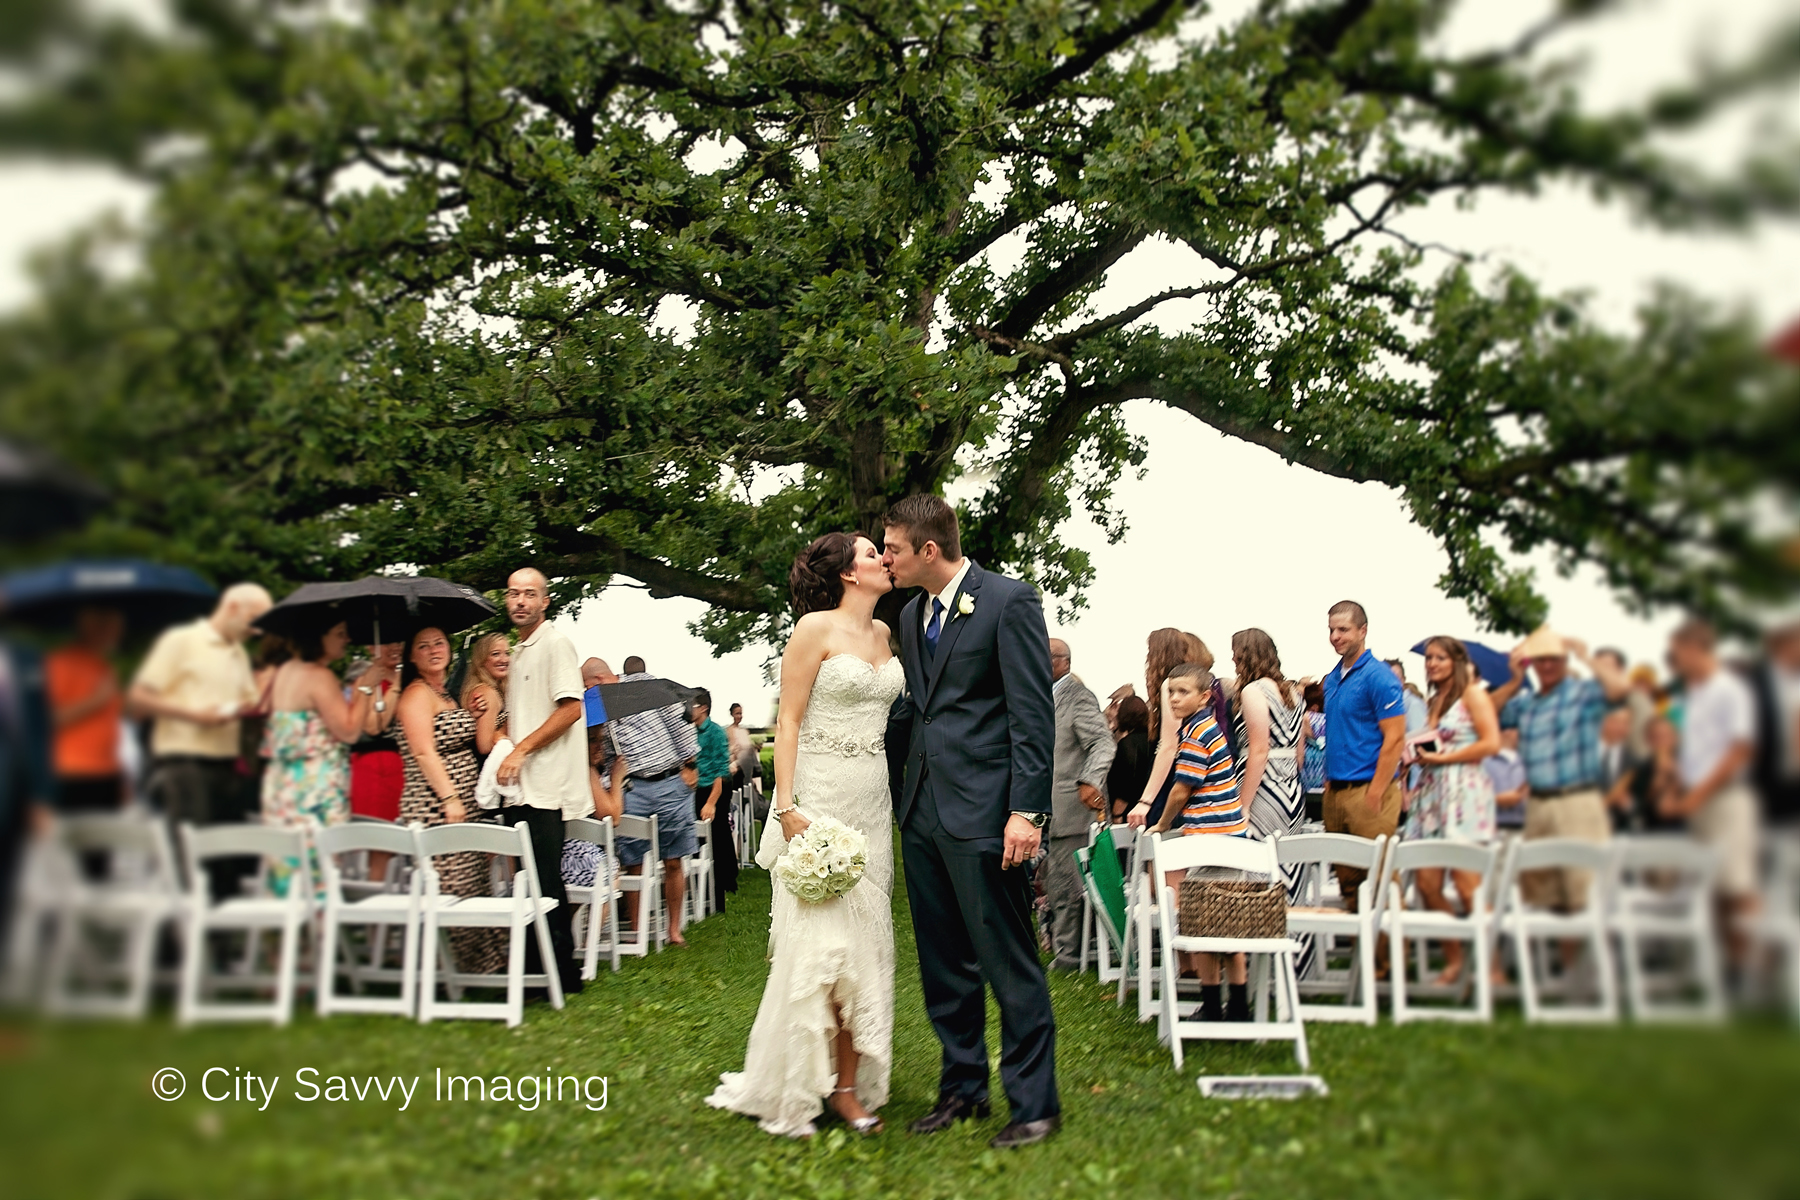 Charming Rustic Wisconsin Farmhouse Barn Wedding Sugarland Weddings Destination Photographer